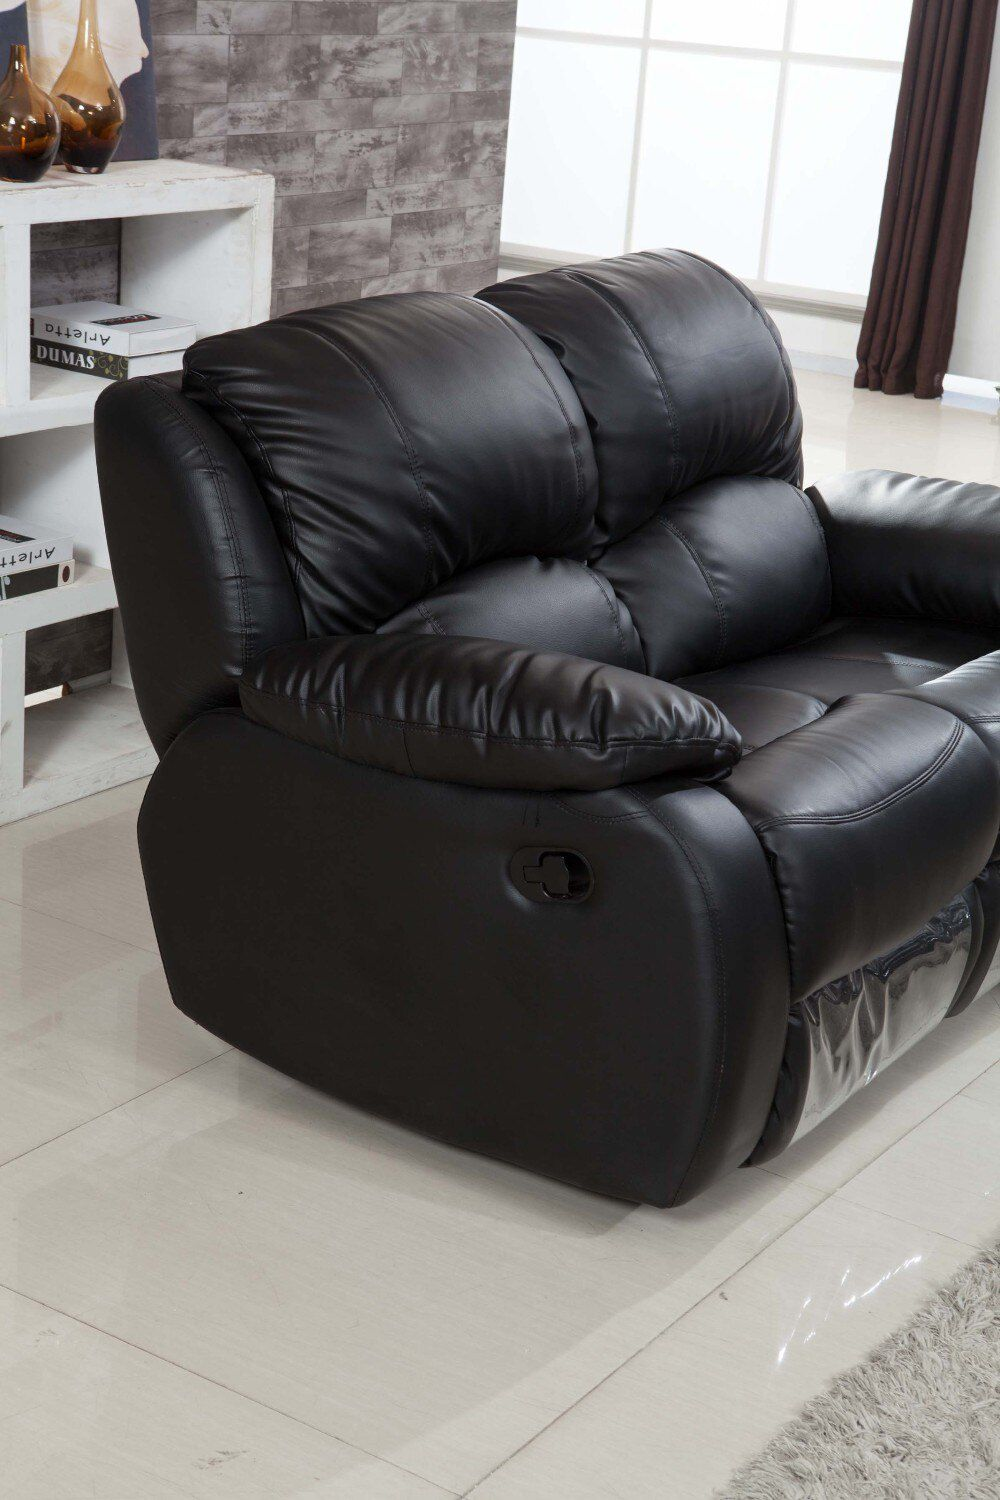 Room Chairs Olx Rawalpindi Room Chair Covers Room Chair Price Room Chairs Near Me In 2020 Cheap Living Room Furniture Furniture Leather Living Room Furniture